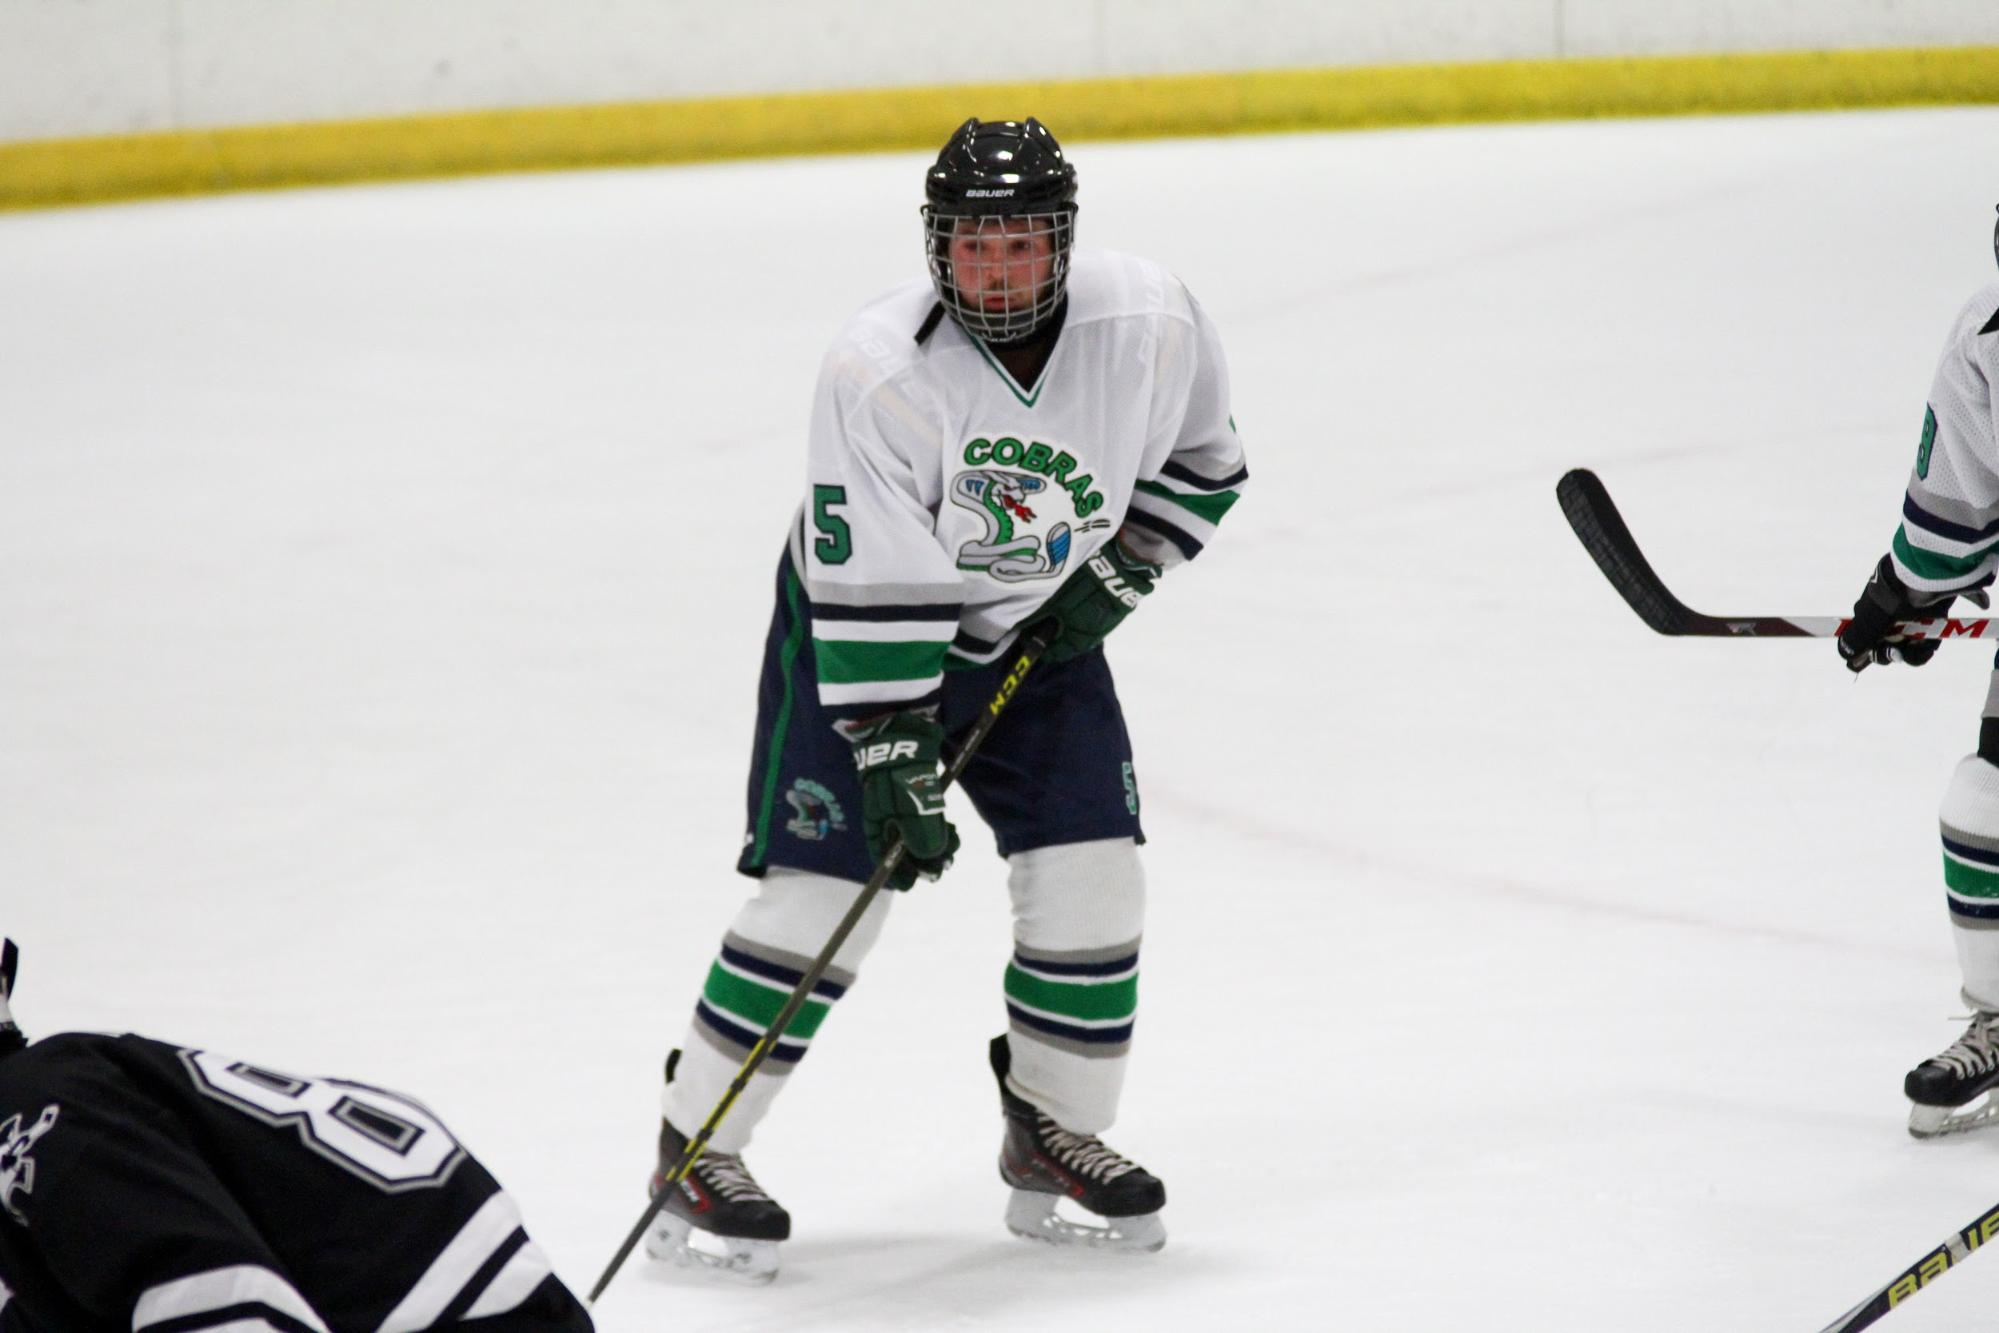 7dccfe91b5bba The Chicago Hockey Initiative is excited to introduce our 46th Microgrant  recipient- Tommy! Tommy is a high school student from the southwest of  suburbs of ...